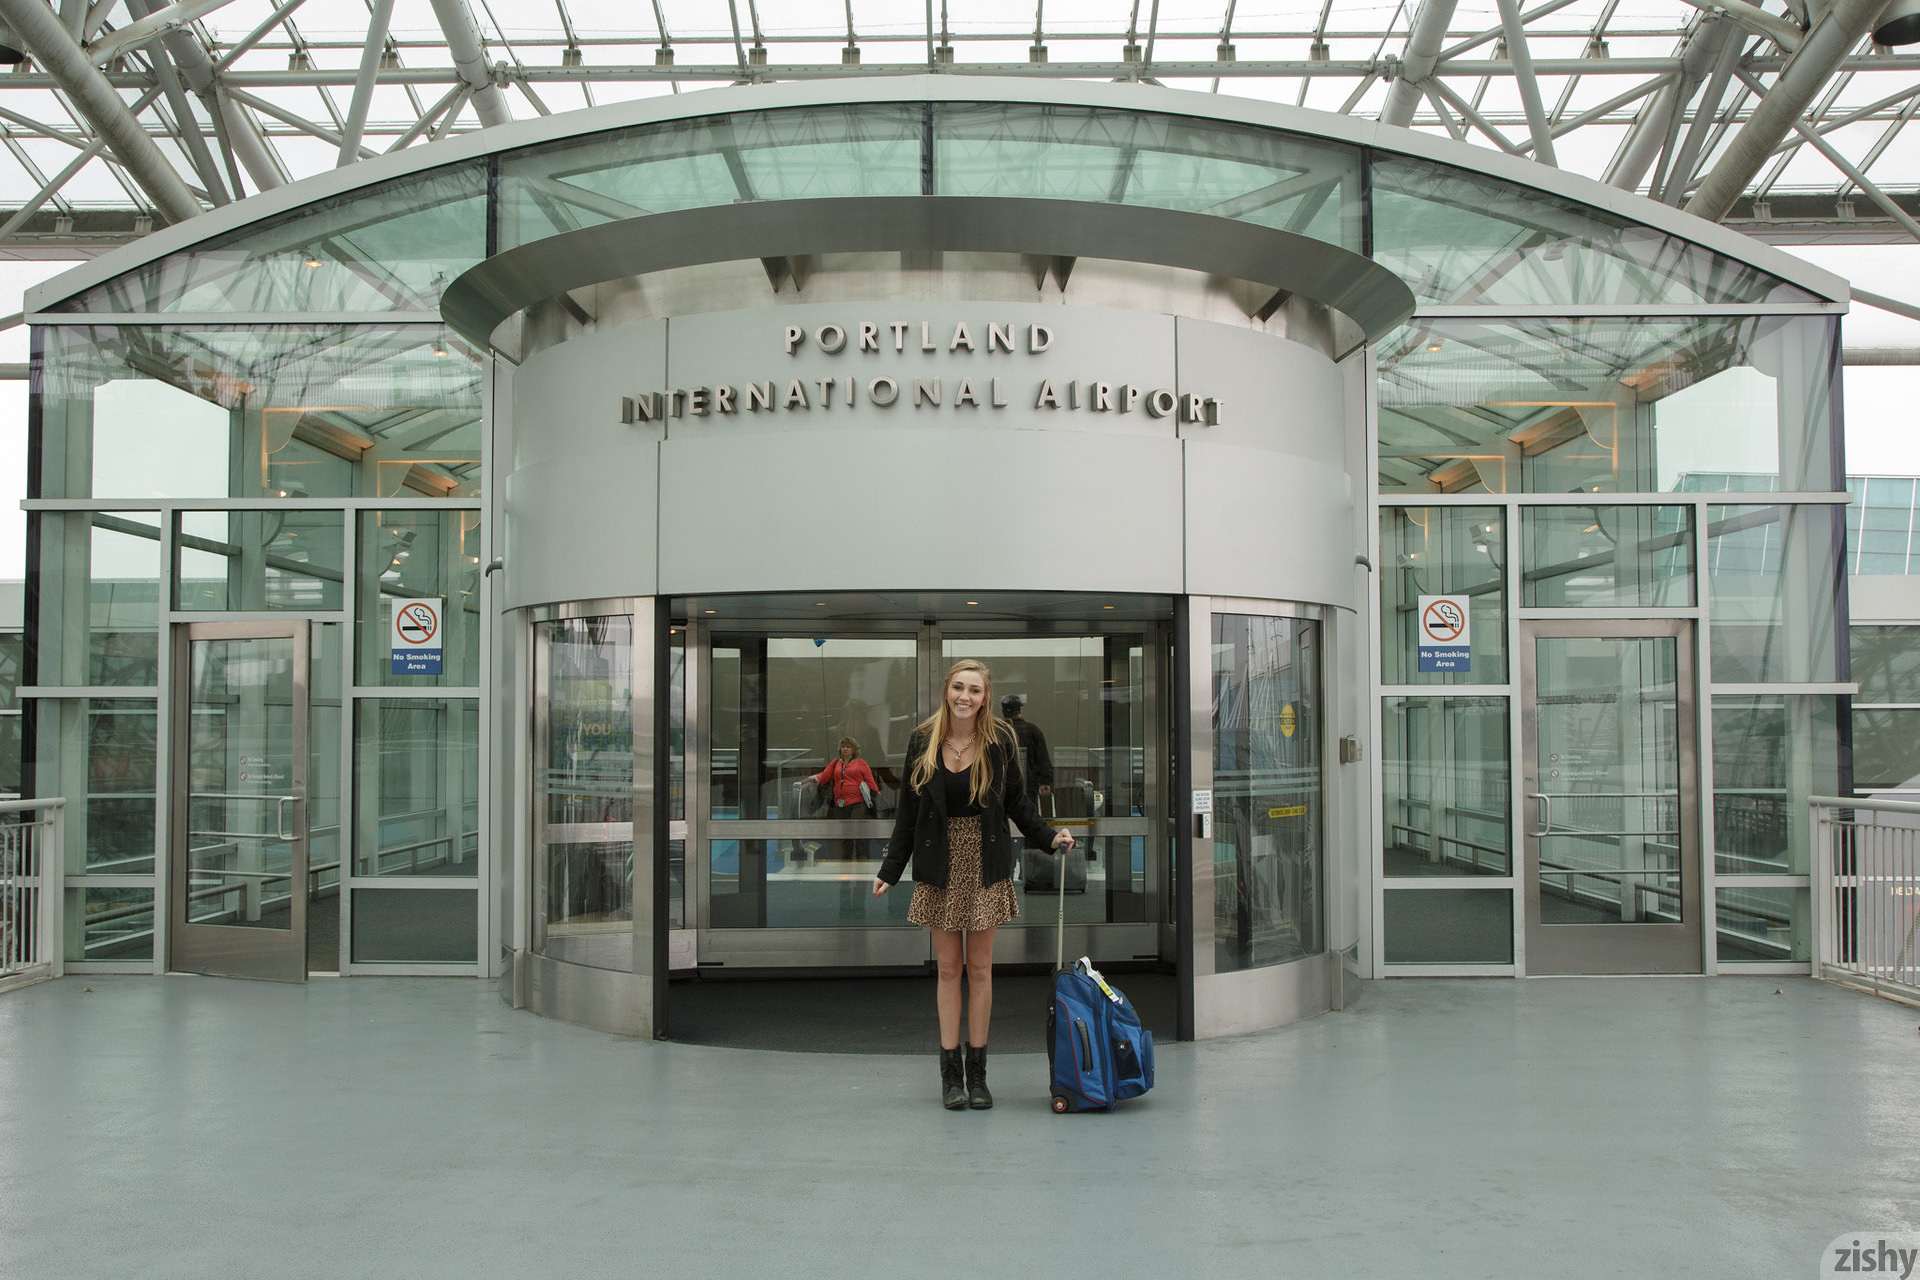 Kendra Sunderland arriving at the airport